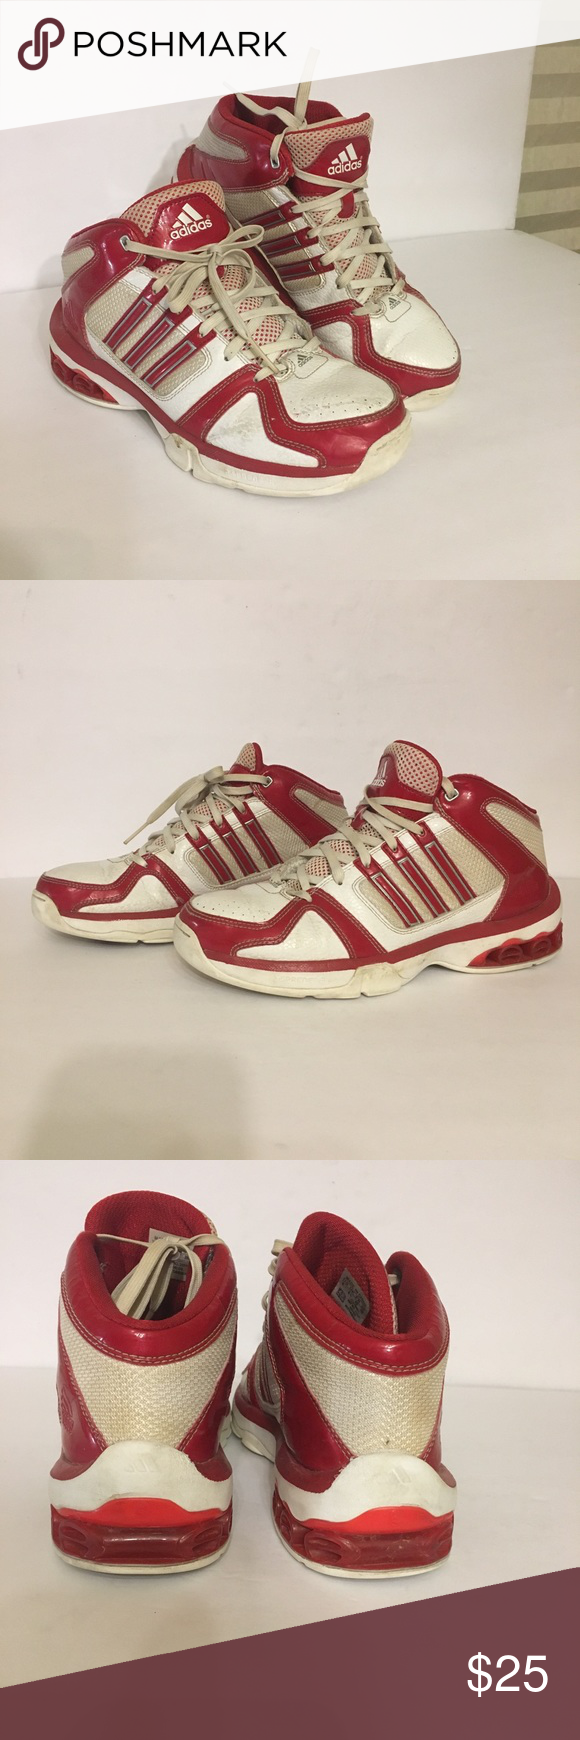 newest 6c285 c0ea5 Adidas men s tennis shoes white and red size 8 Adidas tennis shoes for  Guys, white